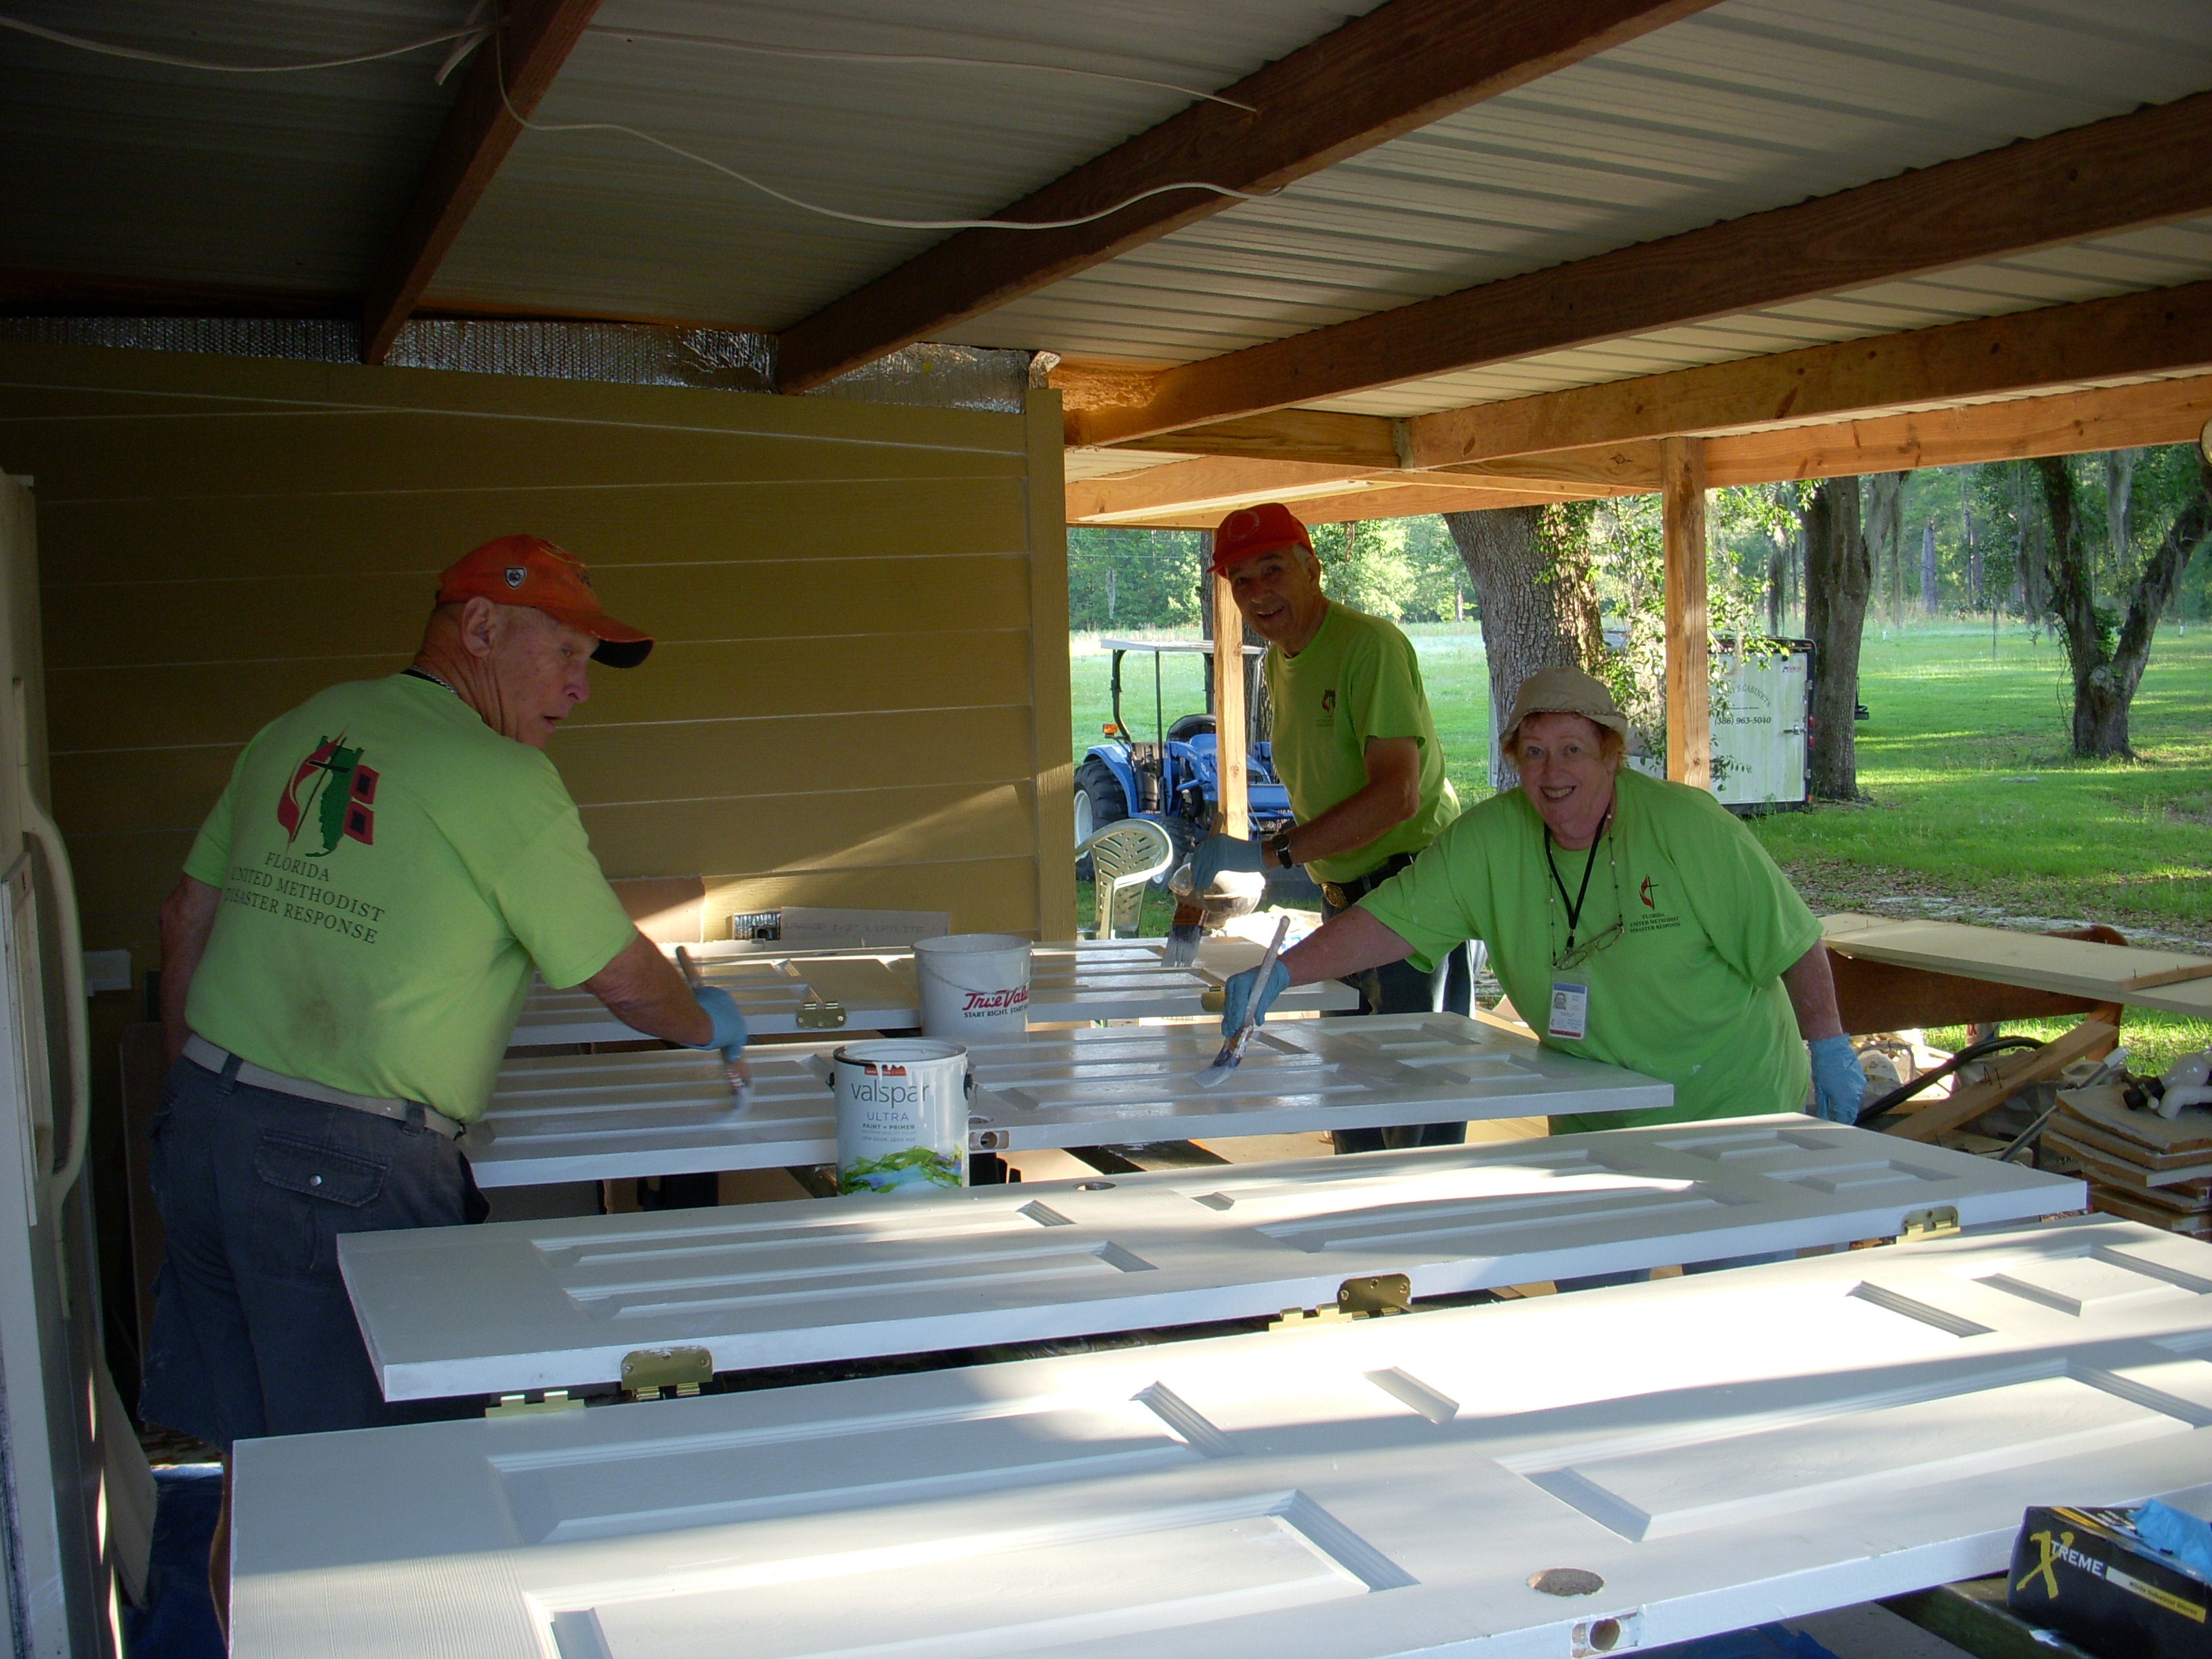 Volunteers from New Covenant UMC, The Villages, First Winter Garden and First Ocala Work in Live Oak to repair homes damaged by TS Debby in 2012.